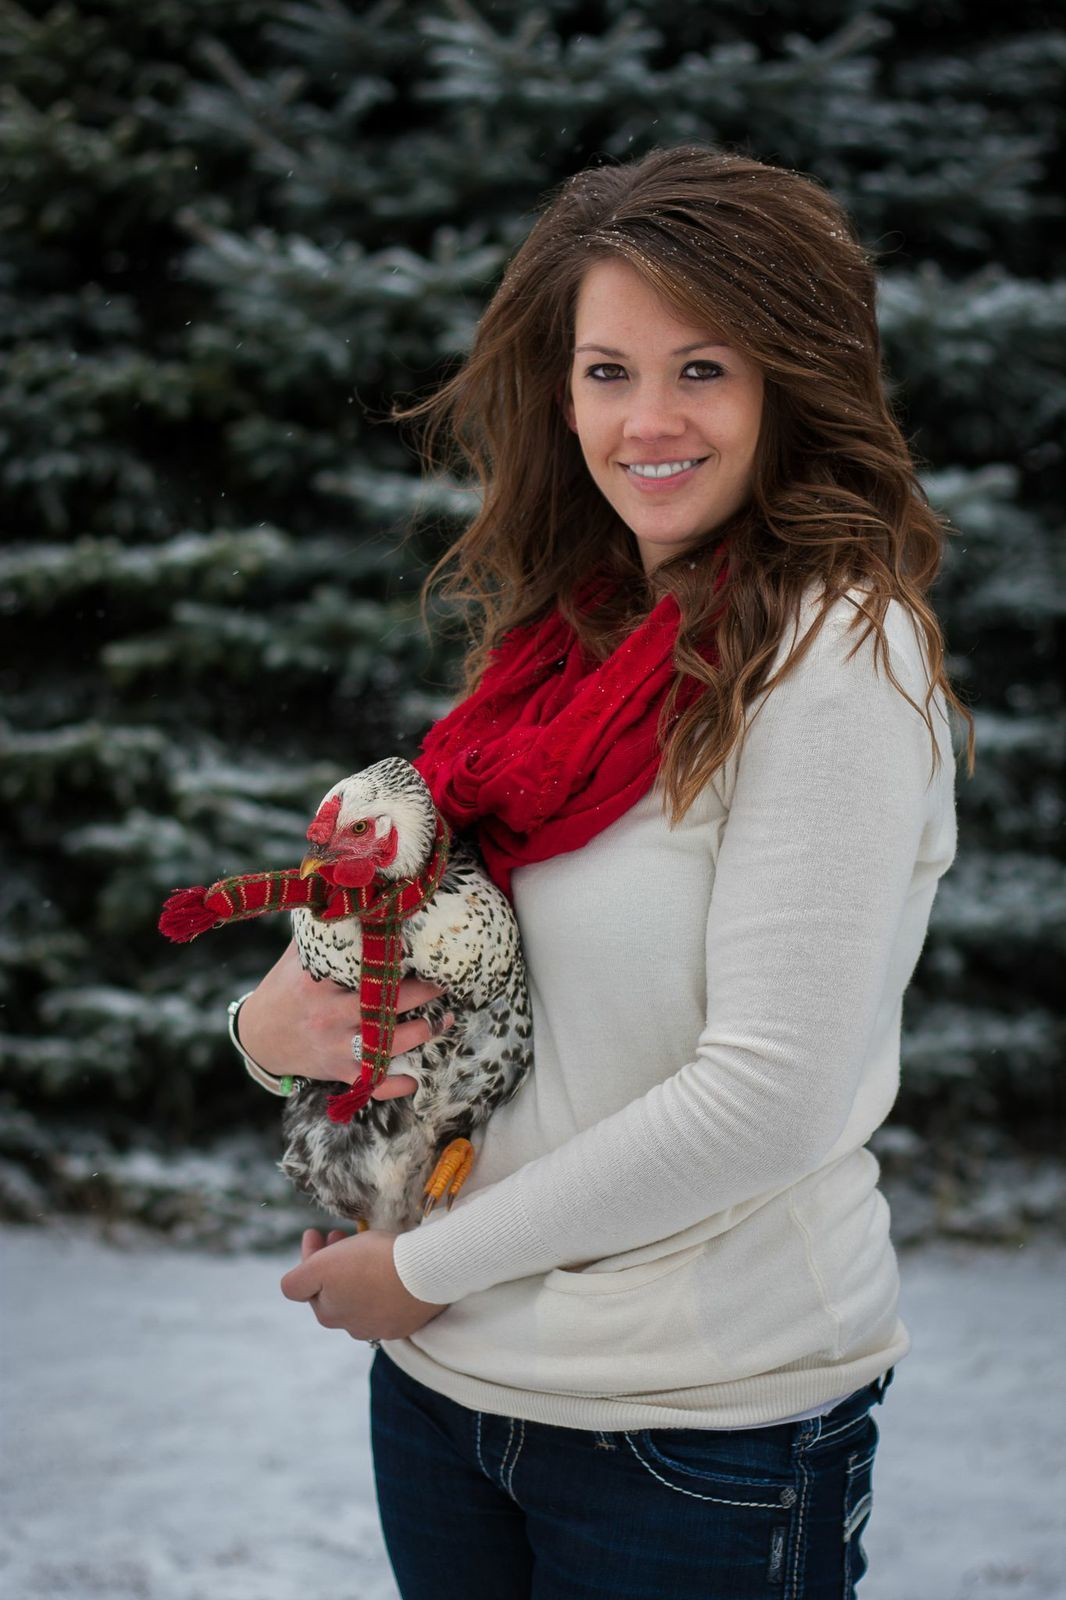 Lace's christmas photo shoot 2013